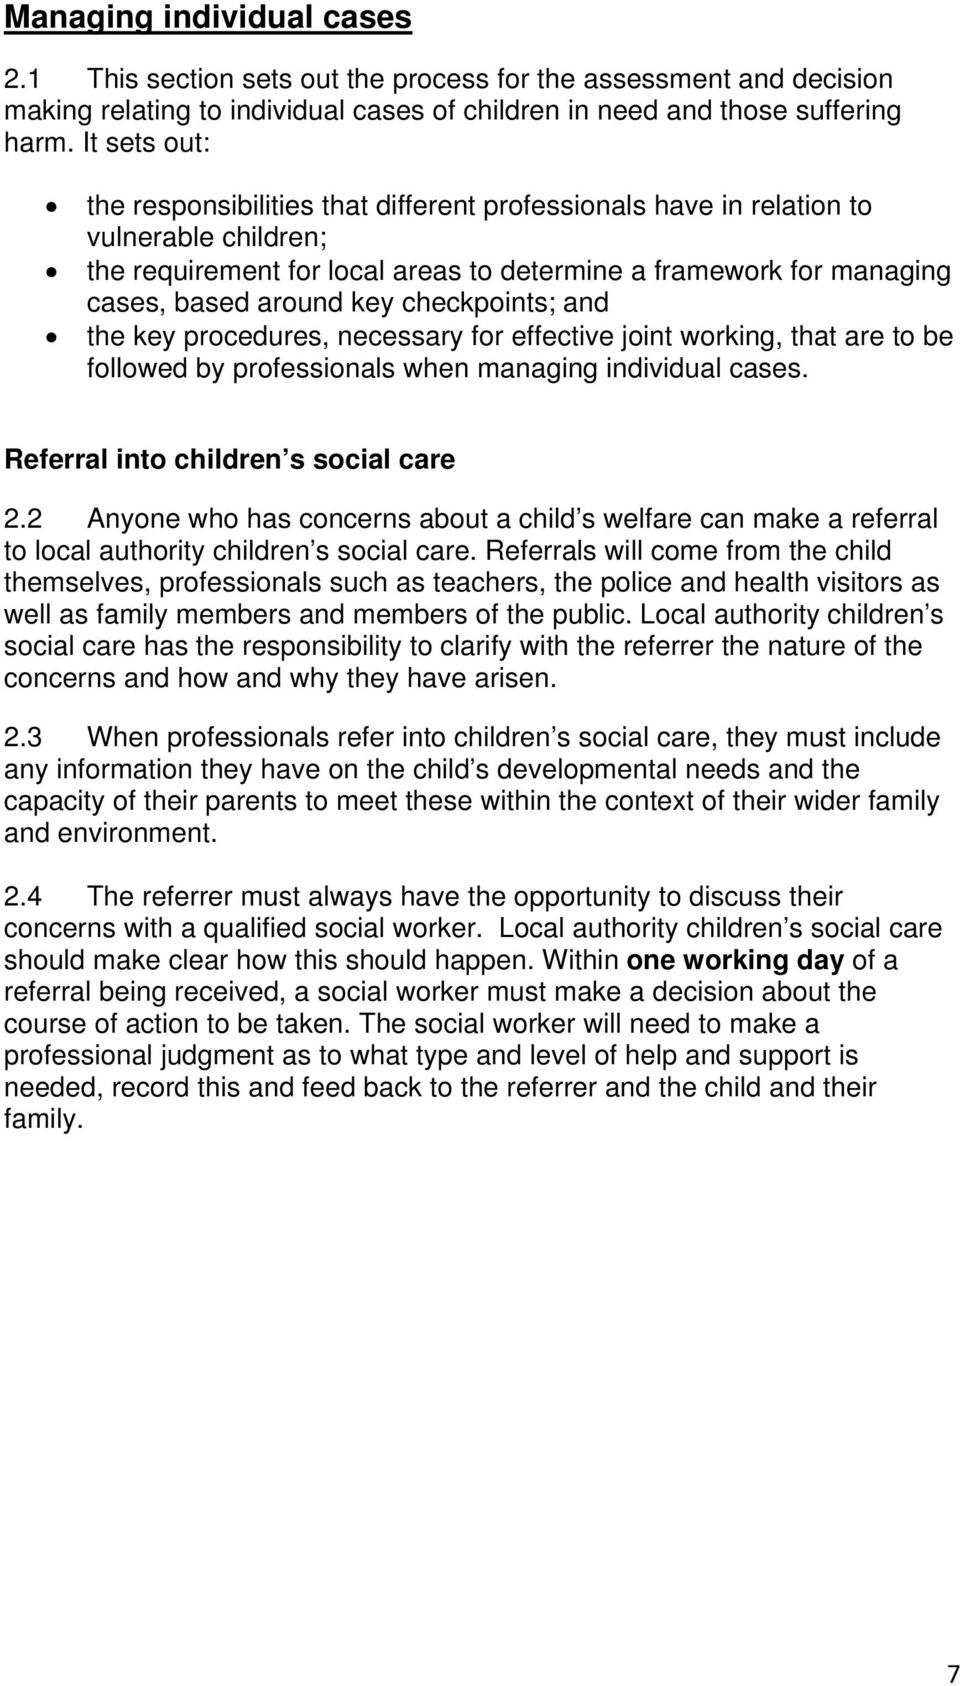 checkpoints; and the key procedures, necessary for effective joint working, that are to be followed by professionals when managing individual cases. Referral into children s social care 2.